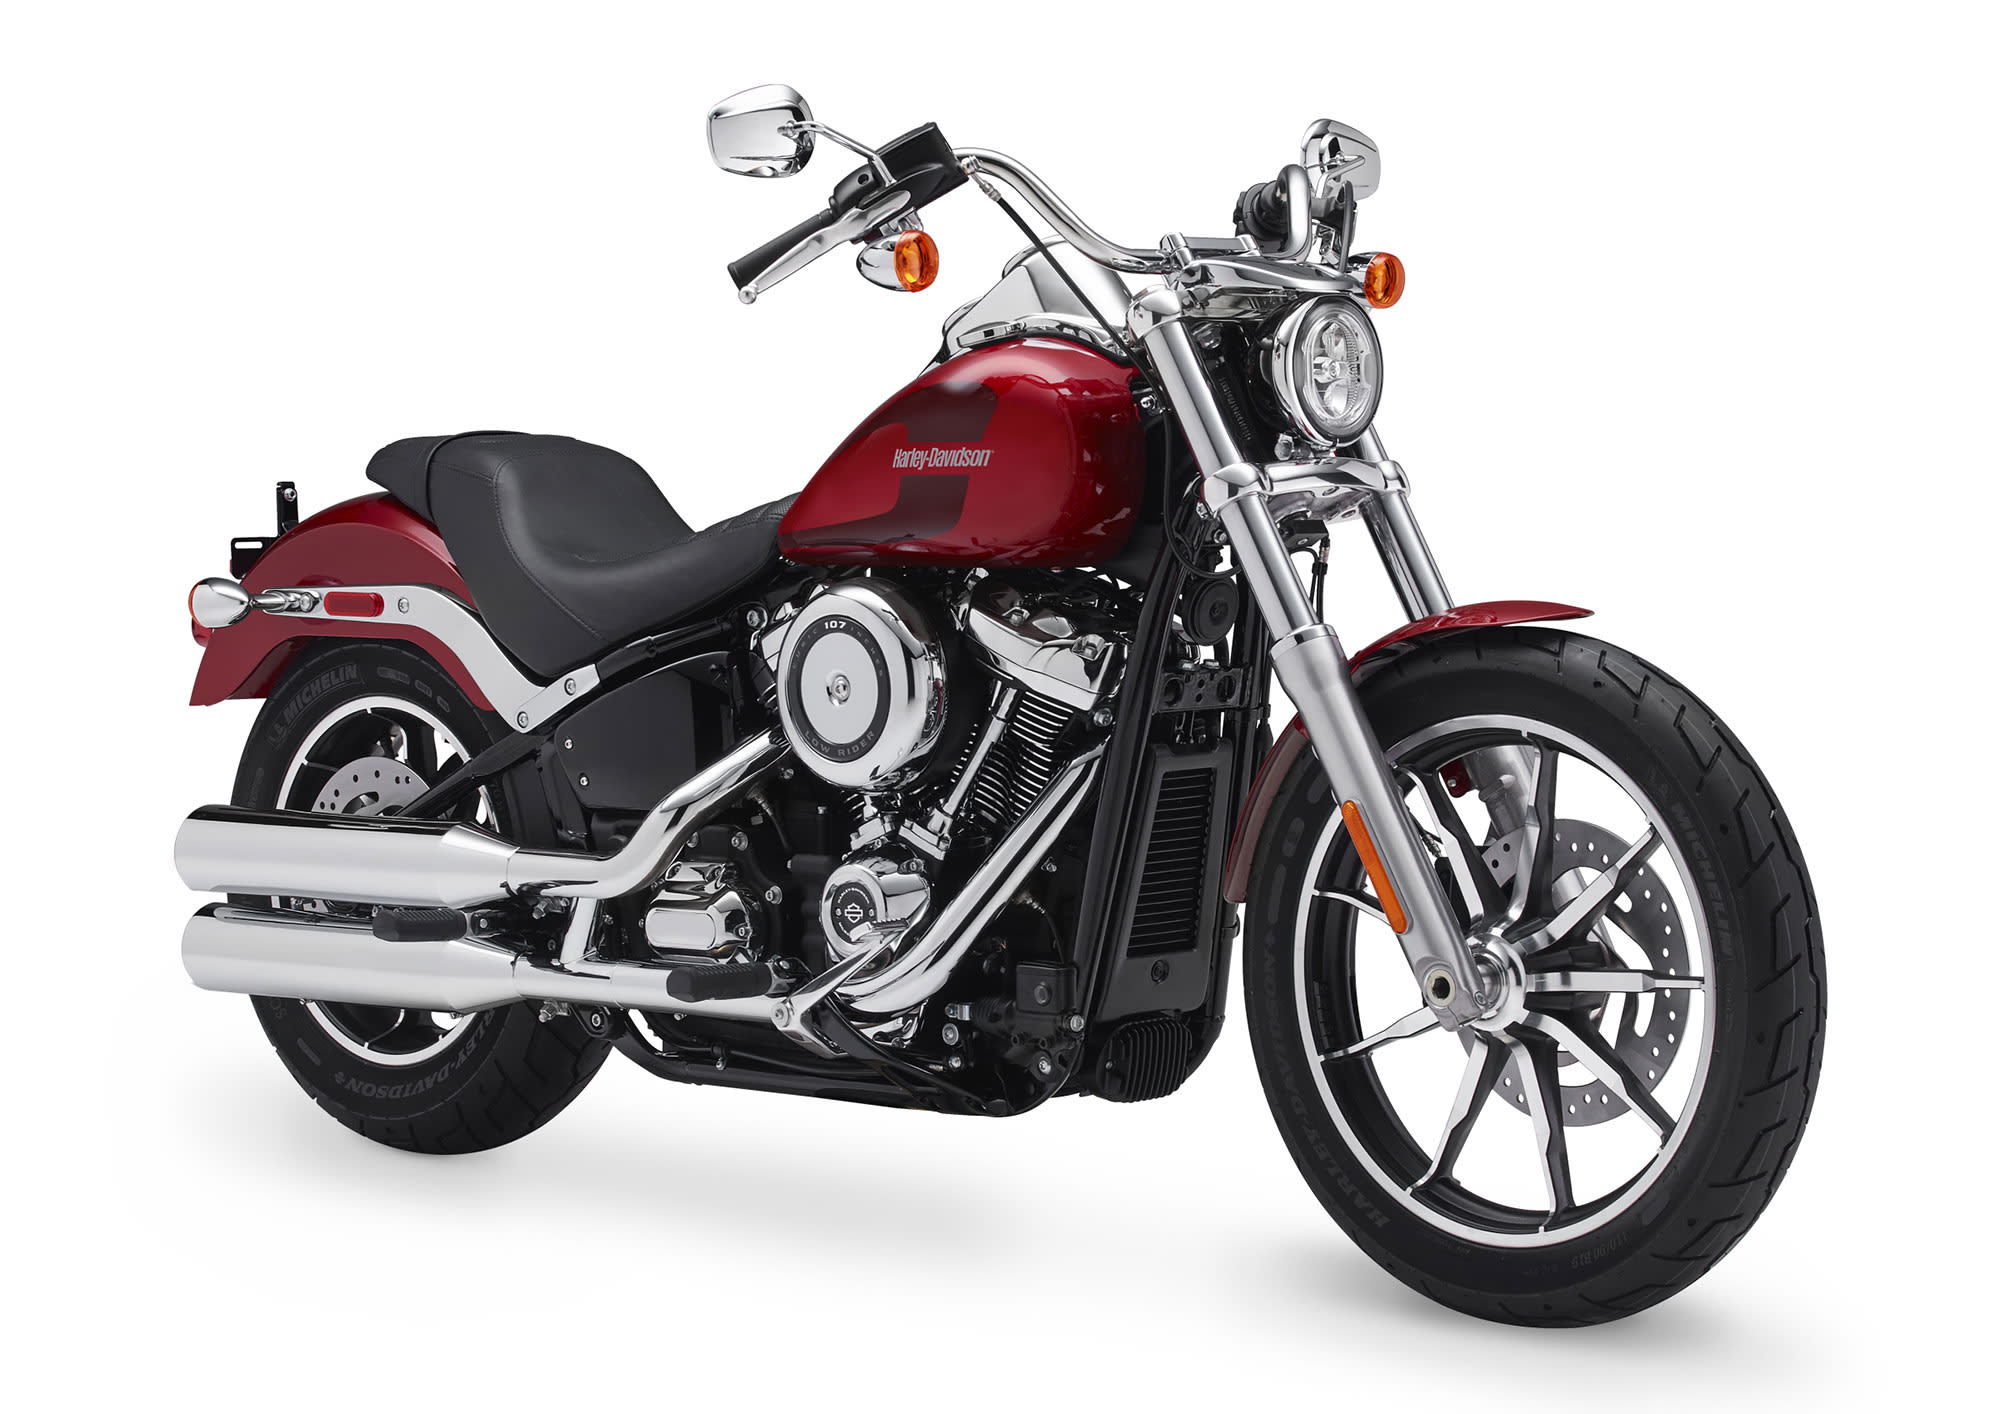 Harley Davidson Tries To Regain Its Coolness Factor 1983 Honda Shadow Bagger Motorcycle